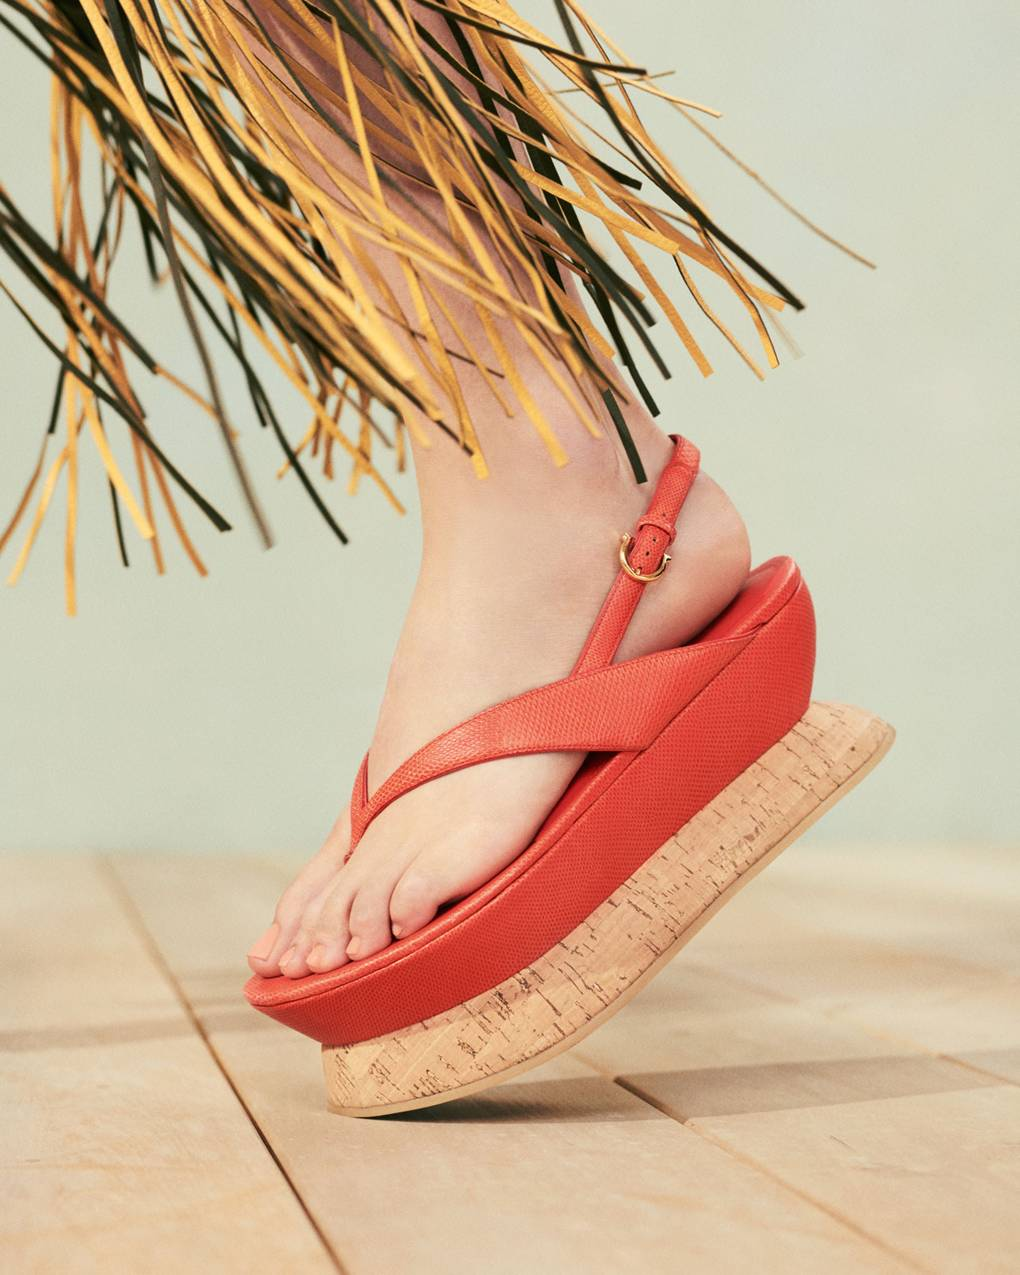 eb8ffba5a7f14 Best Summer Sandals 2019: The Vogue Edit | British Vogue